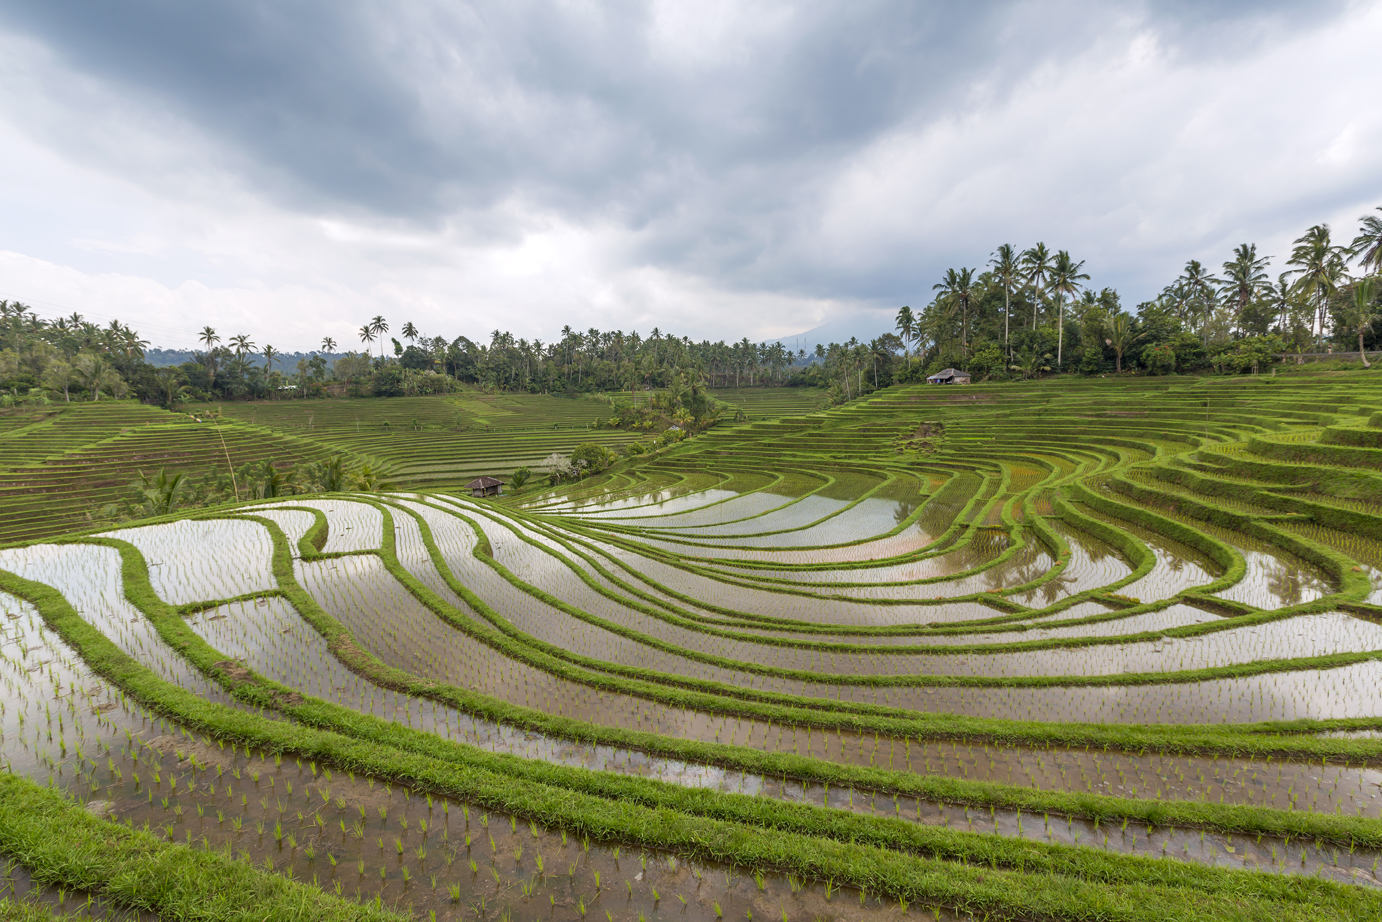 Pupuan rice terraces